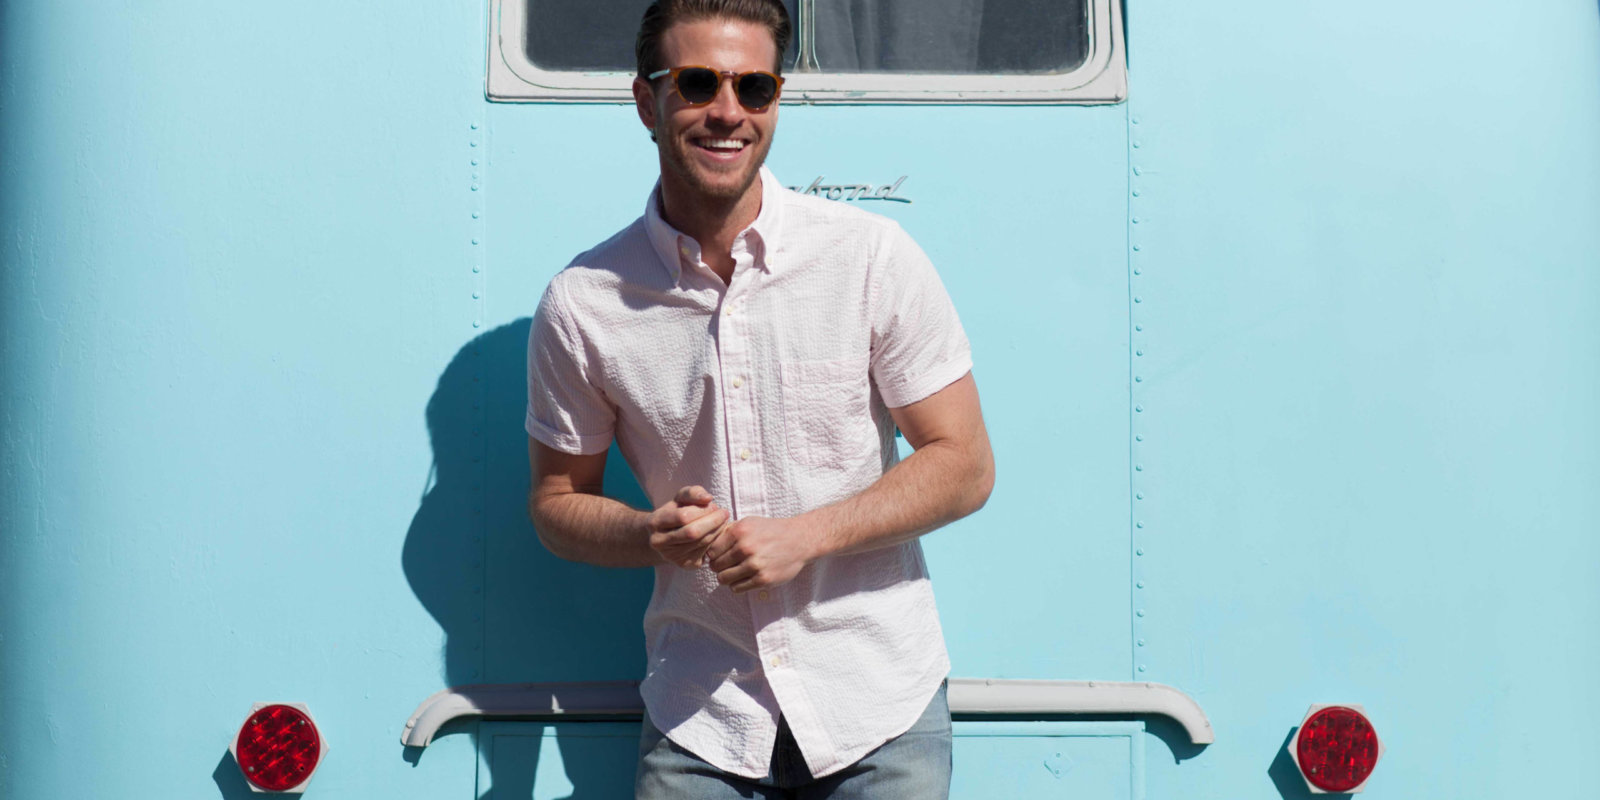 Ratio Clothing uses Spree Commerce for its online platform with customized shirts and a machine learning fitting algorithm